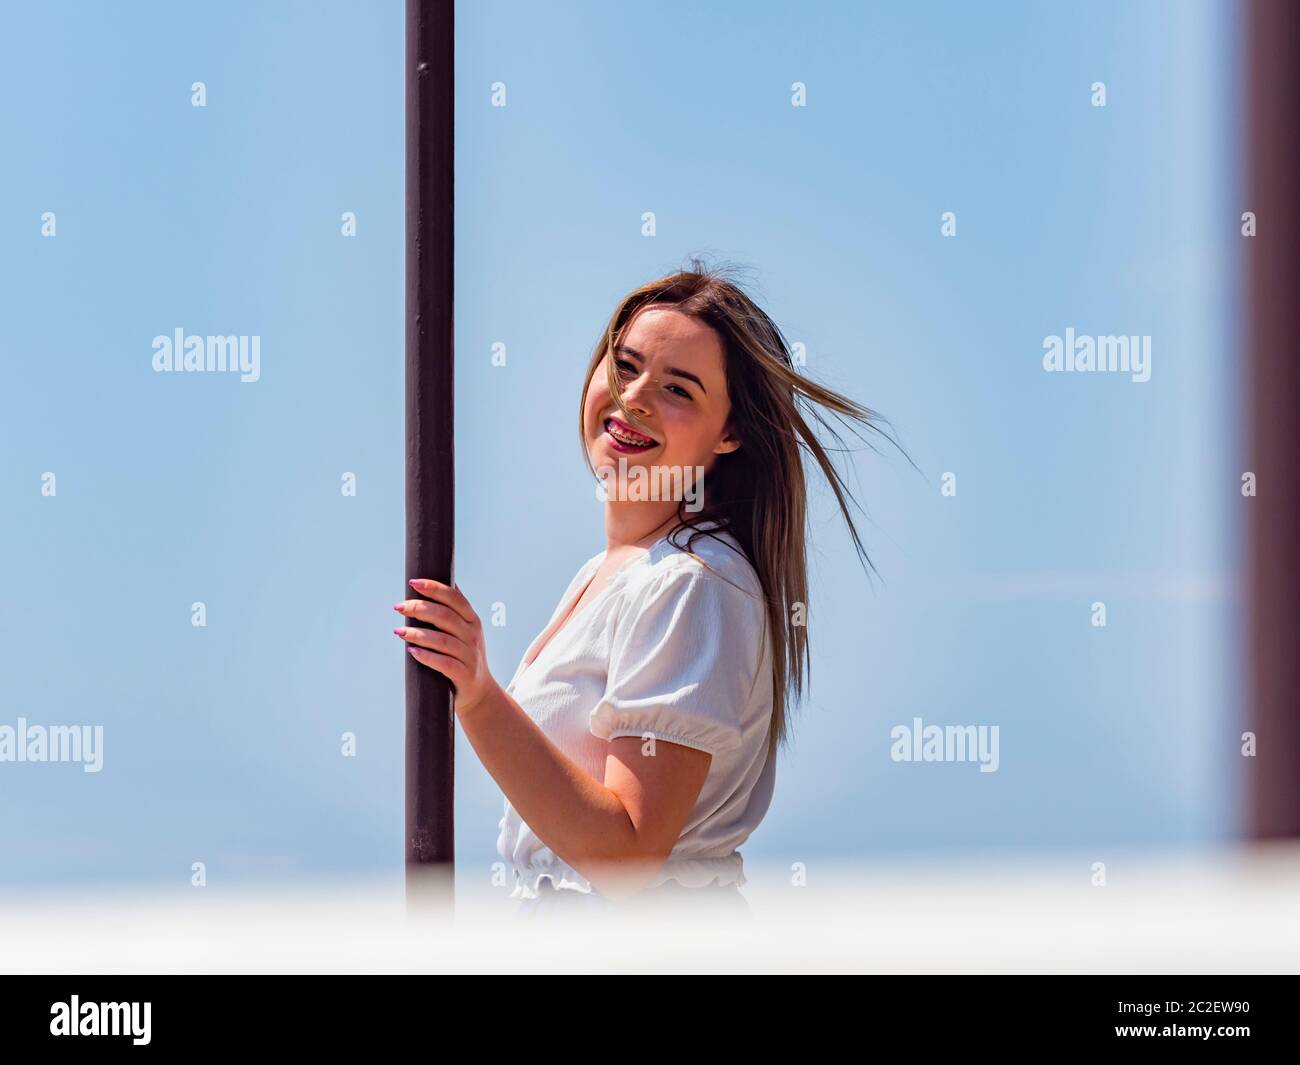 Teengirl spontaneous with teeth braces looking at camera ey eyes contact eyeshot hand holding metal post column Stock Photo